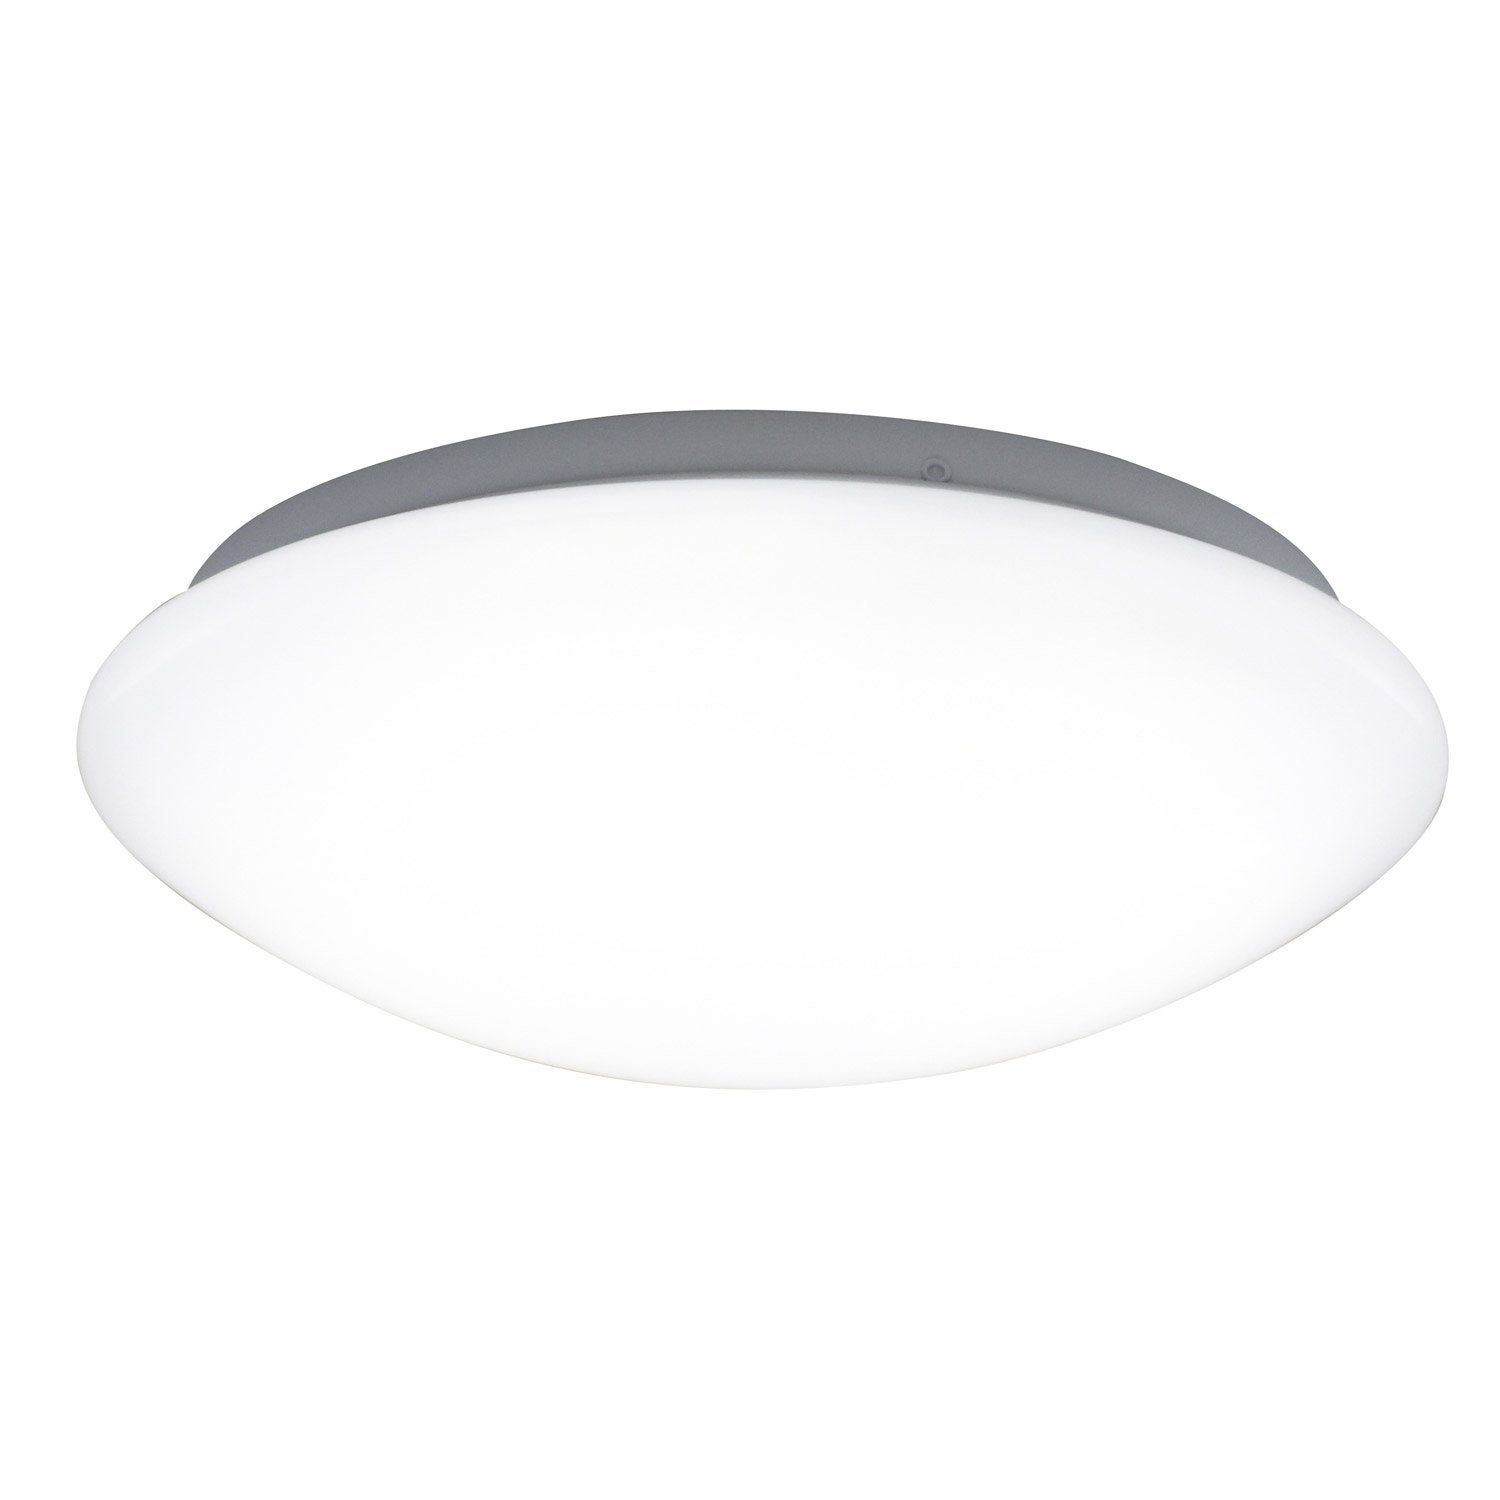 Plafonnier Madyled LED 1 X 12 W Intgre Blanc Froid